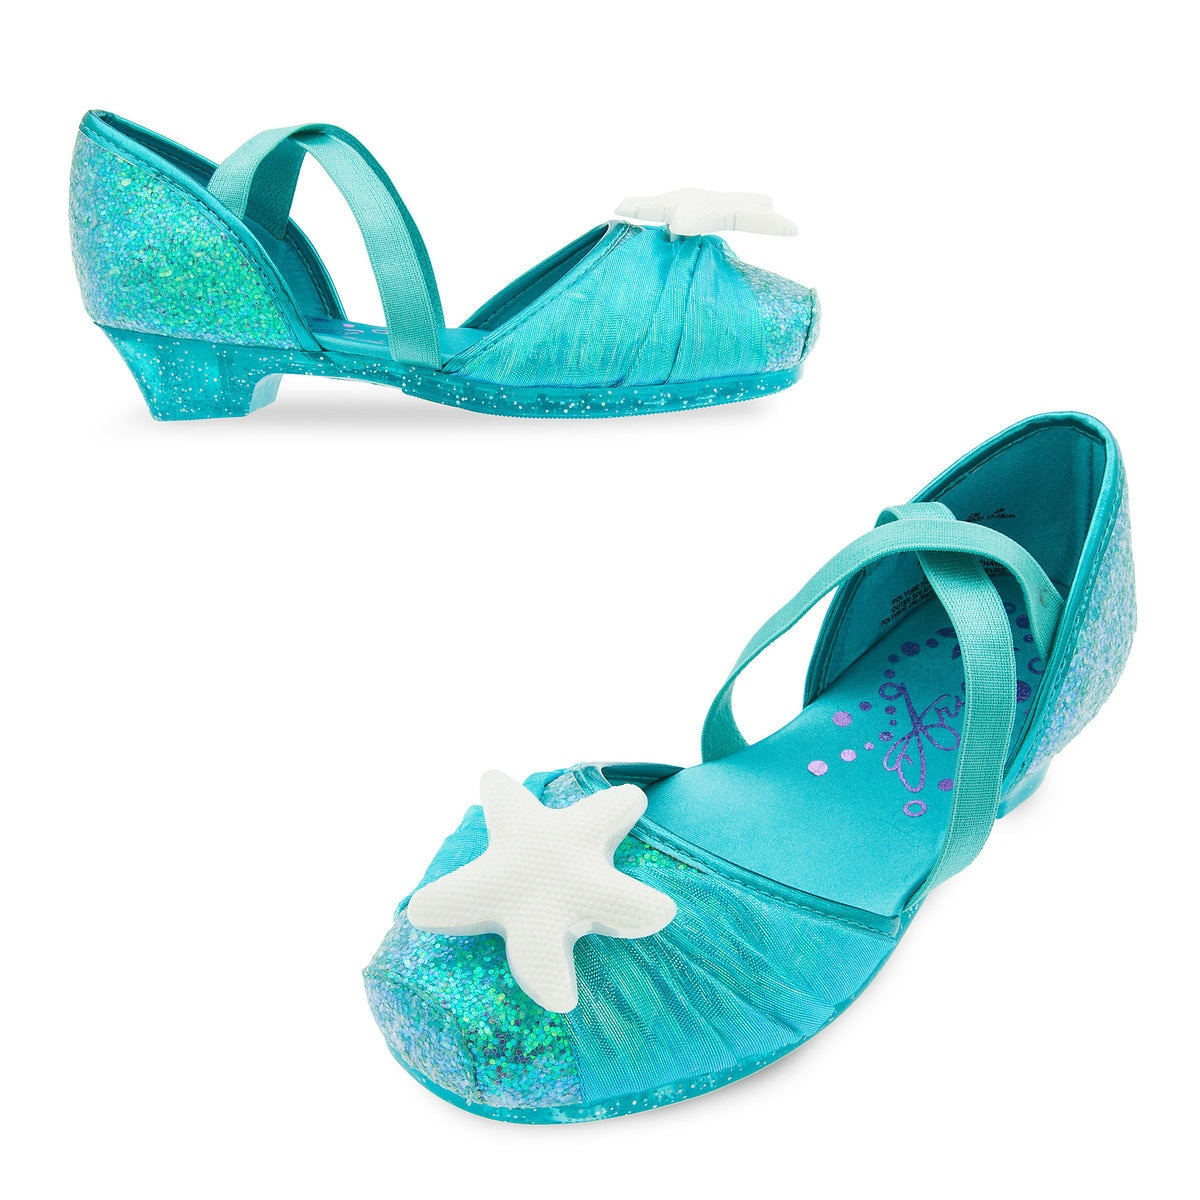 2d35568ffdd1 Product Image of Ariel Costume Shoes for Kids   1